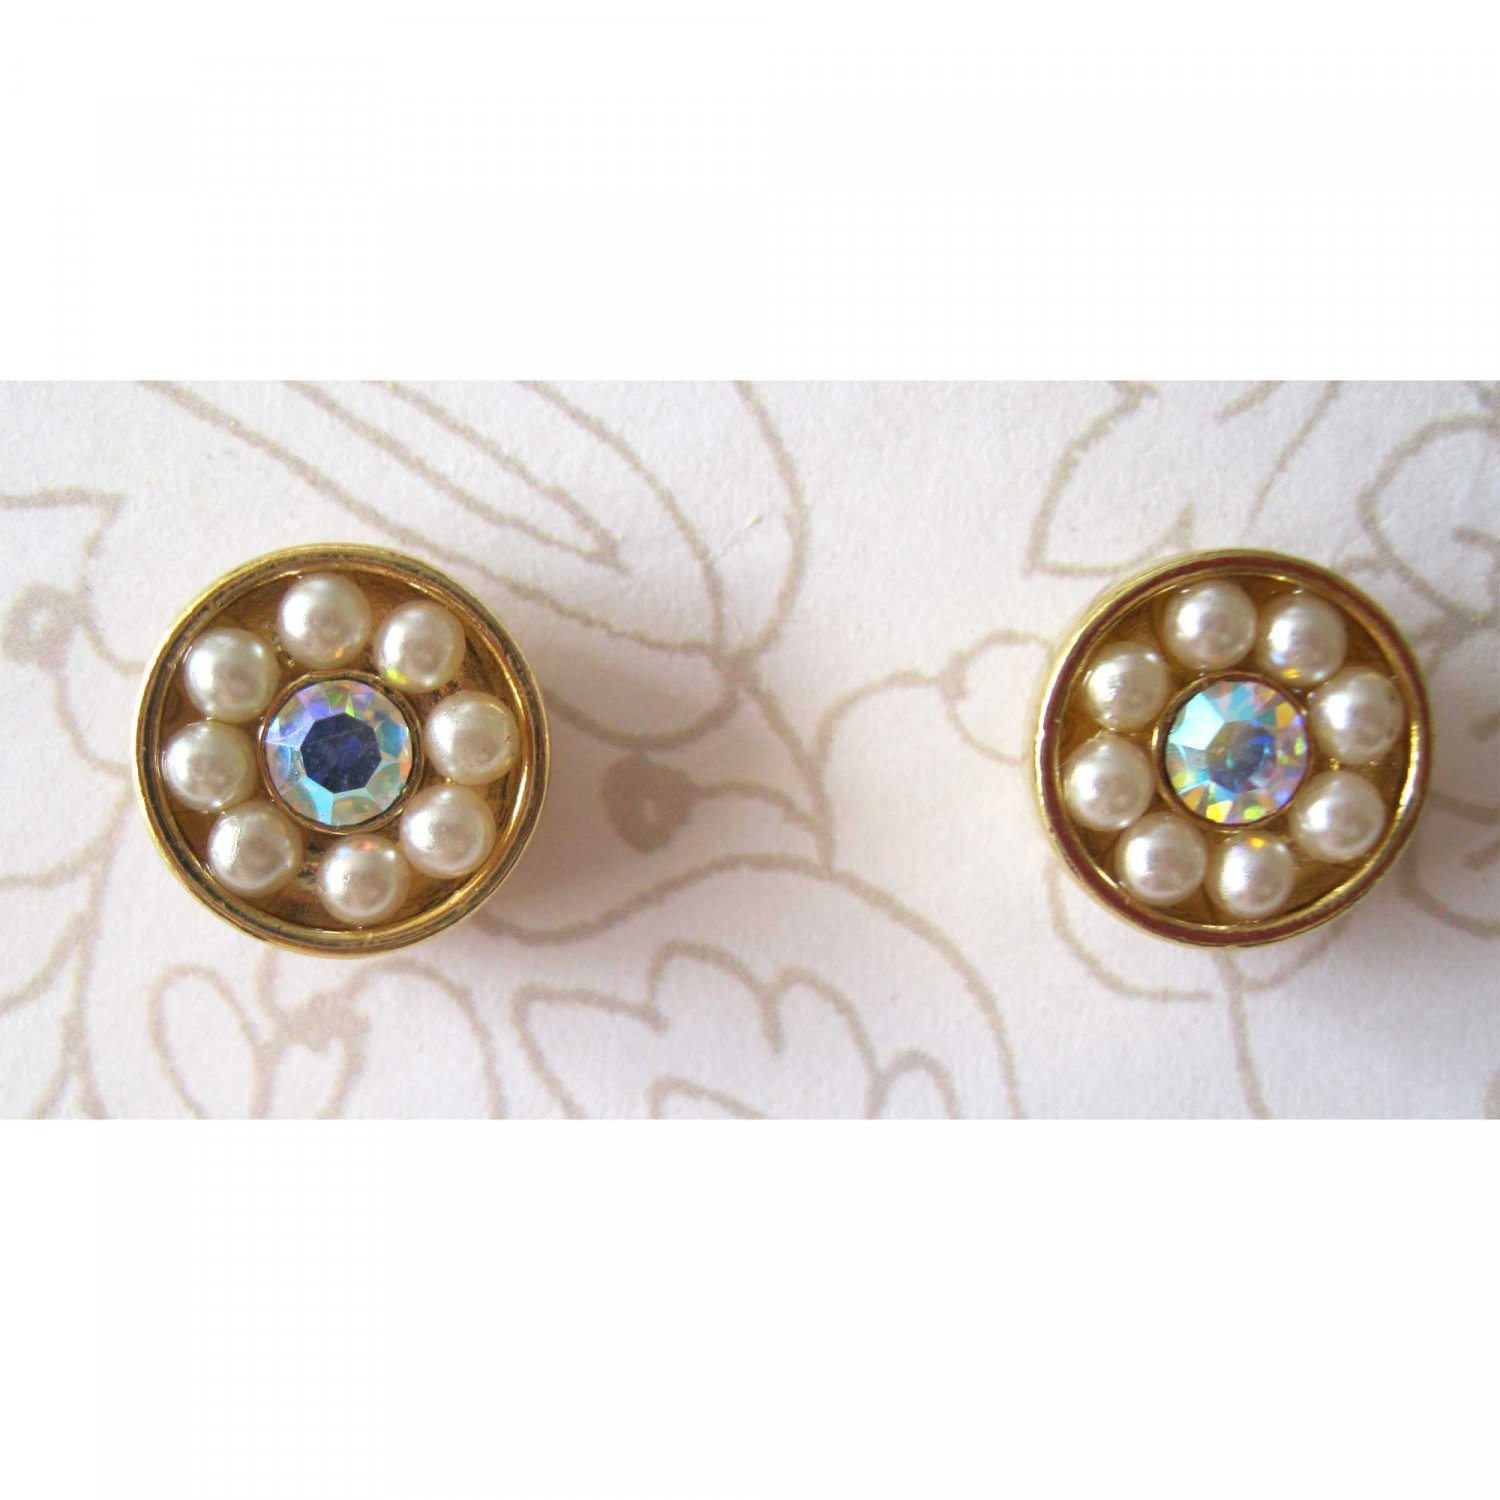 Faux pearl gold button earrings with aurora borealis crystal center{1512e}